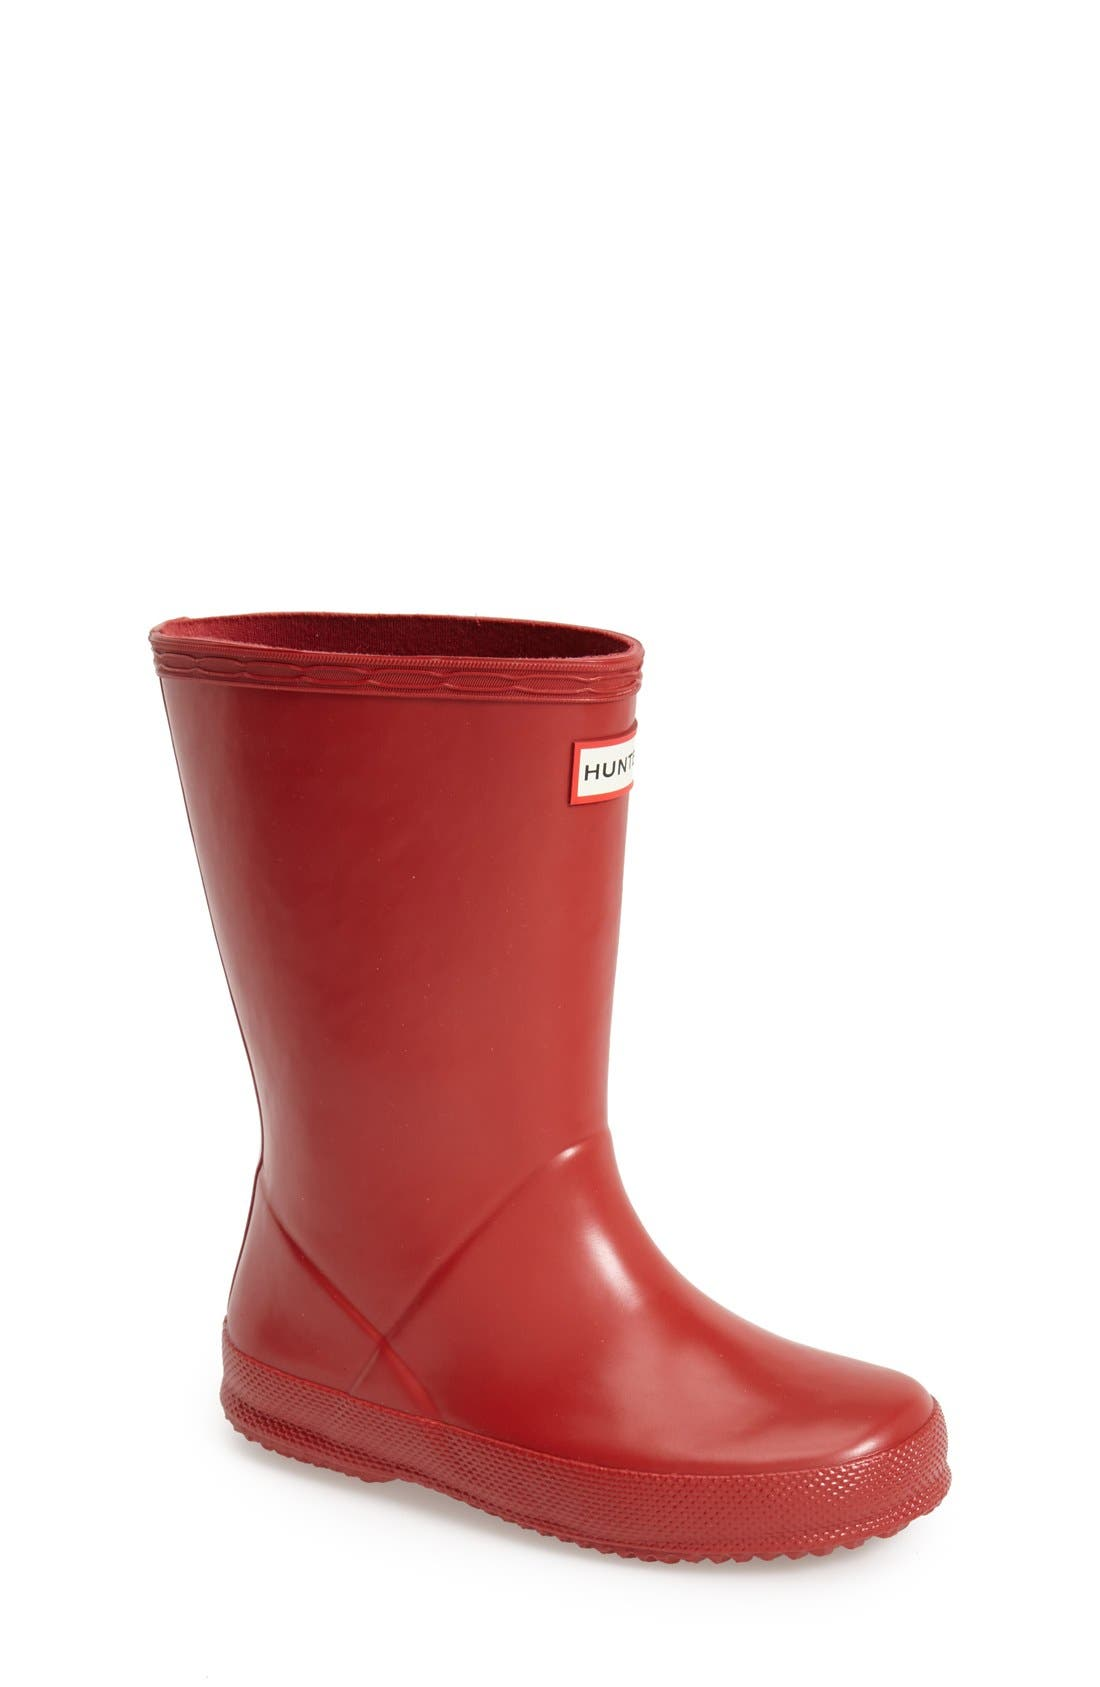 'First Classic' Rain Boot,                         Main,                         color, Military Red